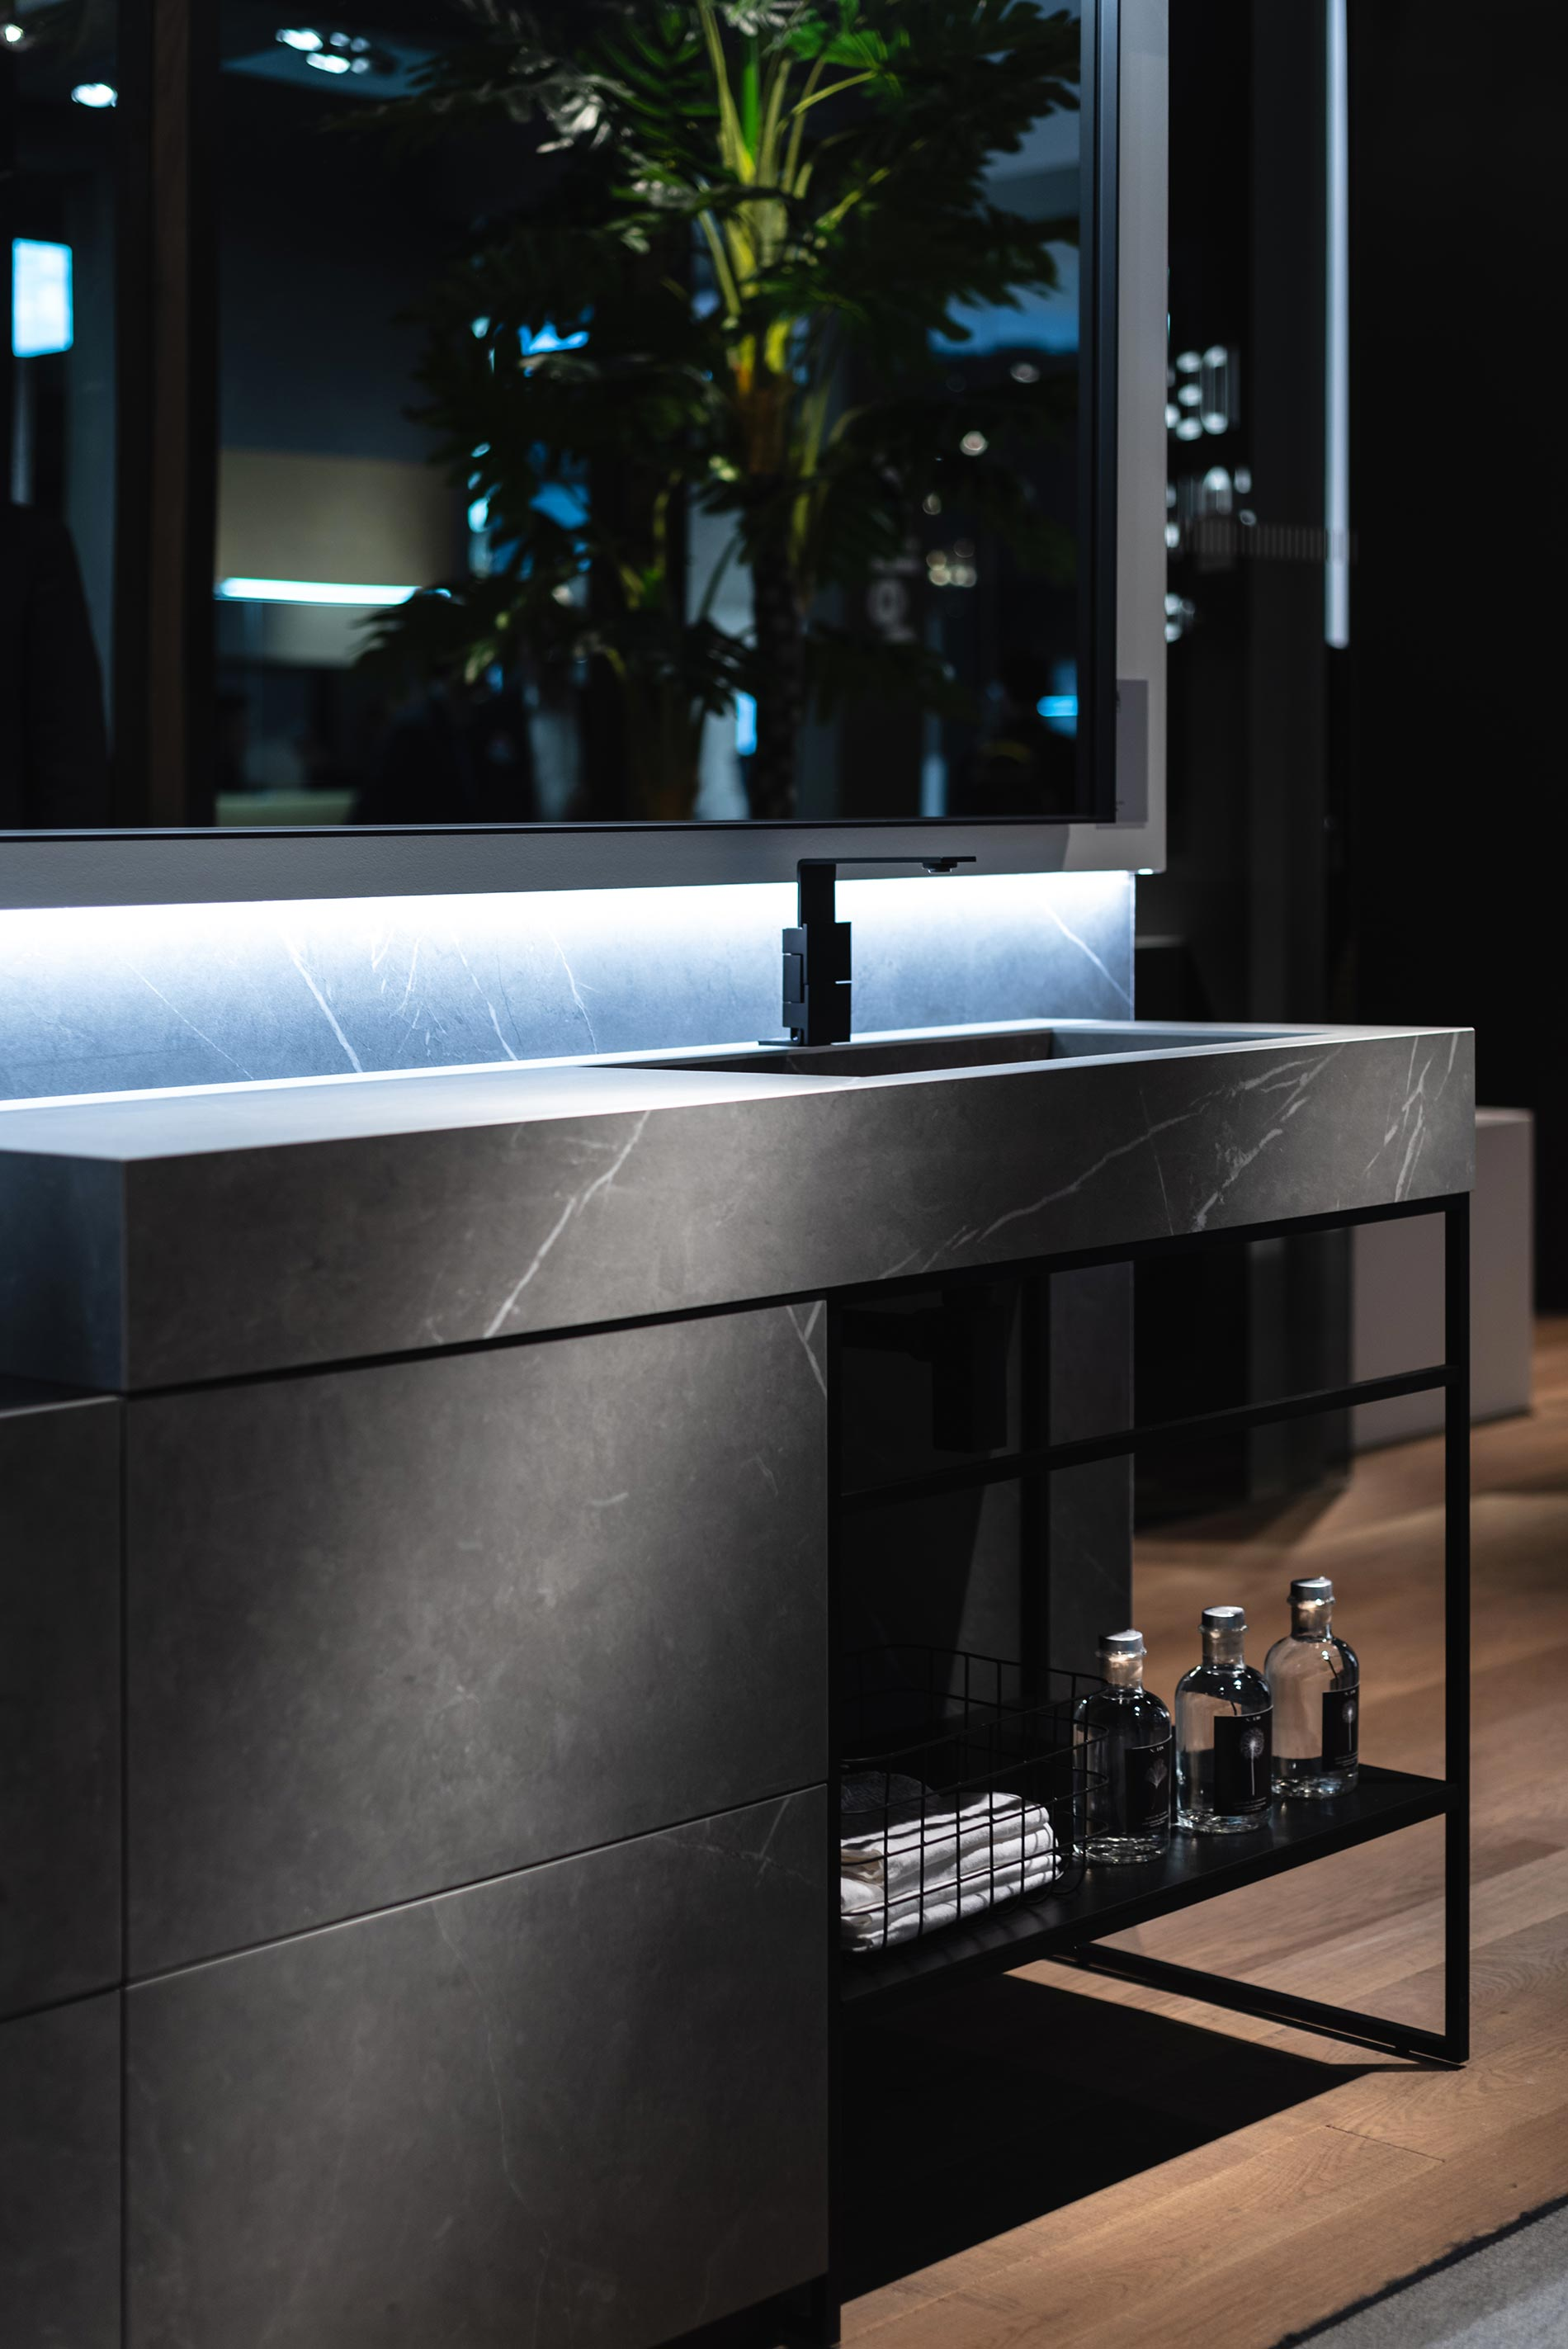 5 ALTERNATIVES TO THE TABLETOP WASHBASIN